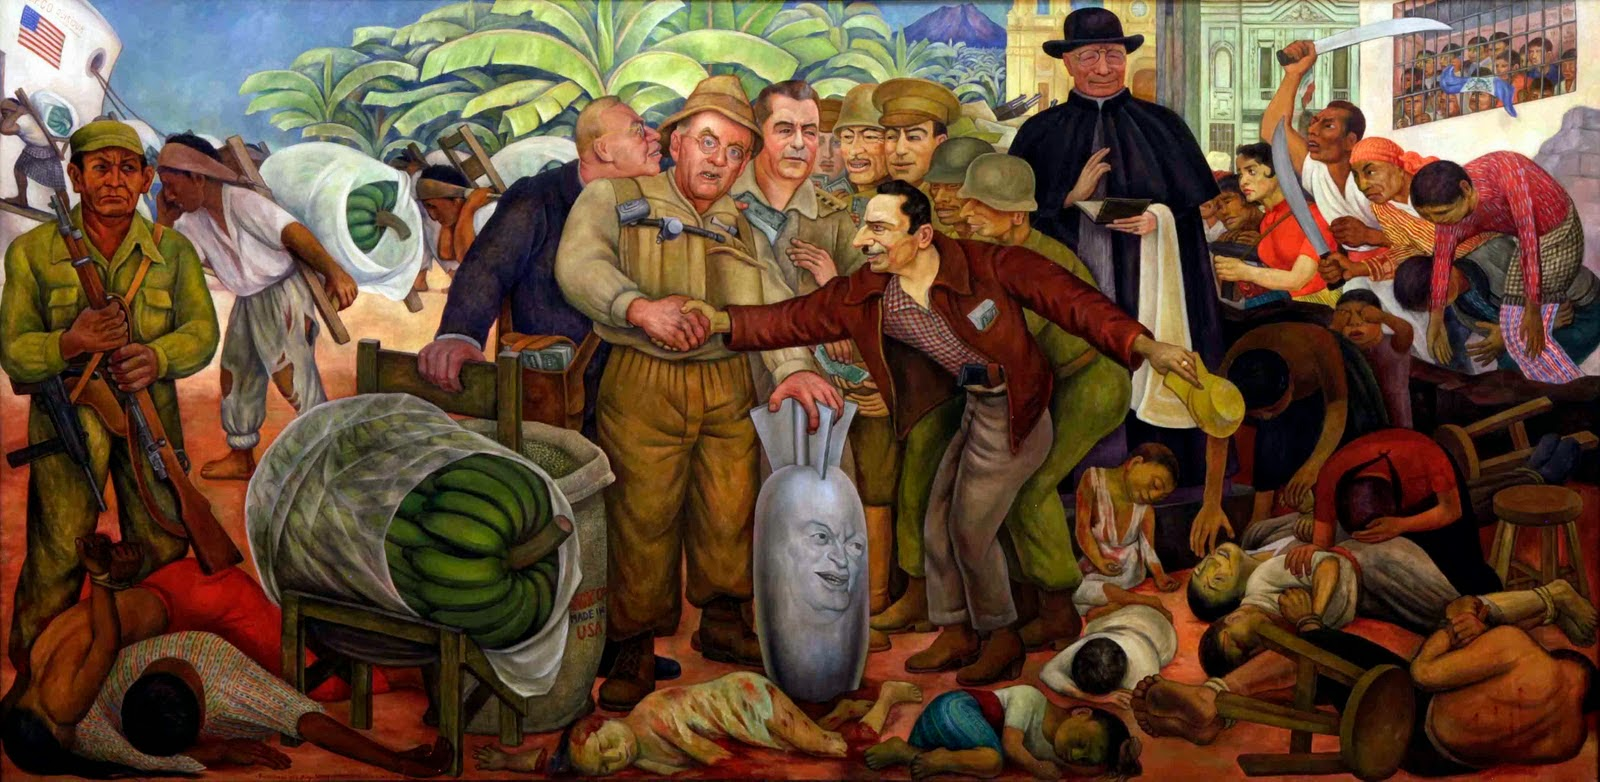 Jose antonio bru blog el muralista diego rivera la for Diego rivera s mural